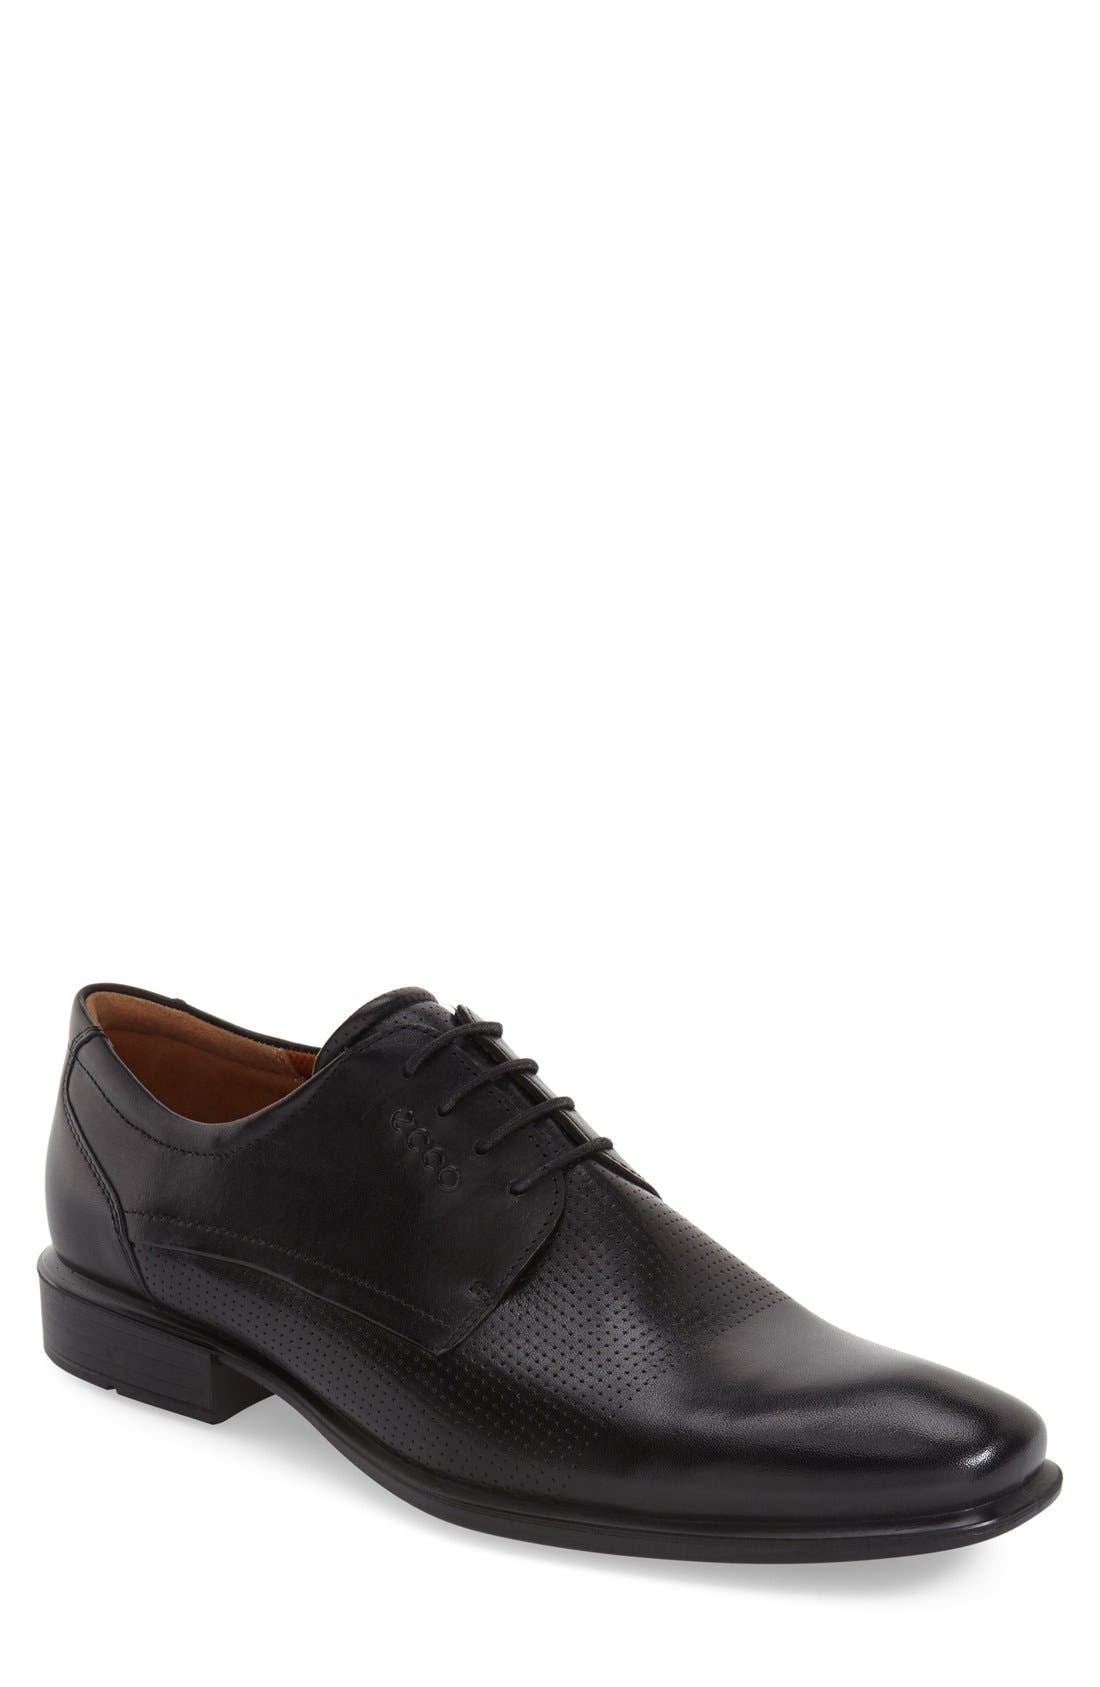 ECCO 'Cairo' Perforated Plain Toe Derby(Men)